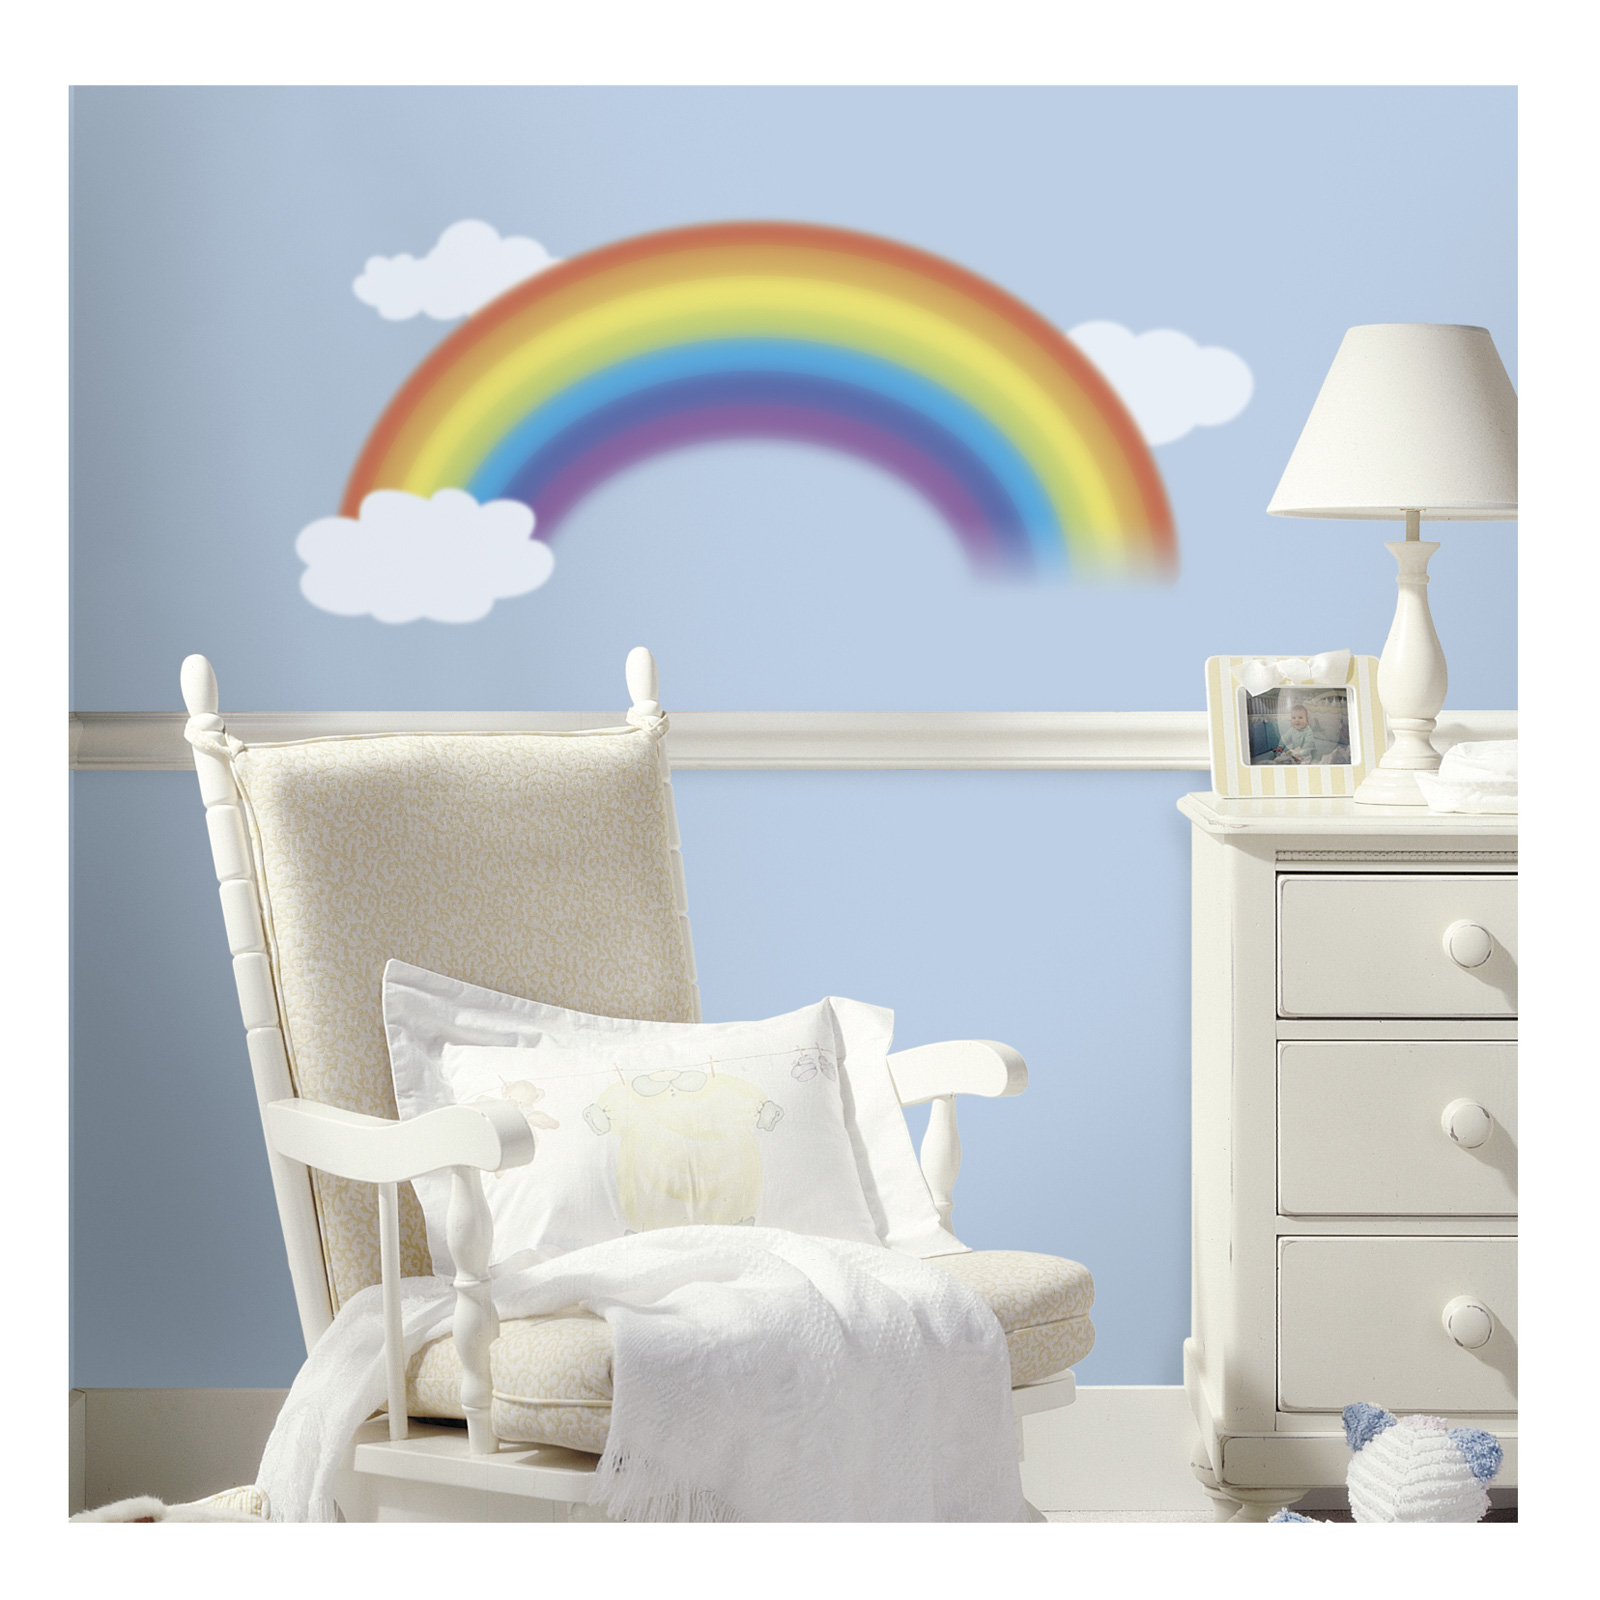 Over The Rainbow Wall Decal by Stardom Specialty in USA